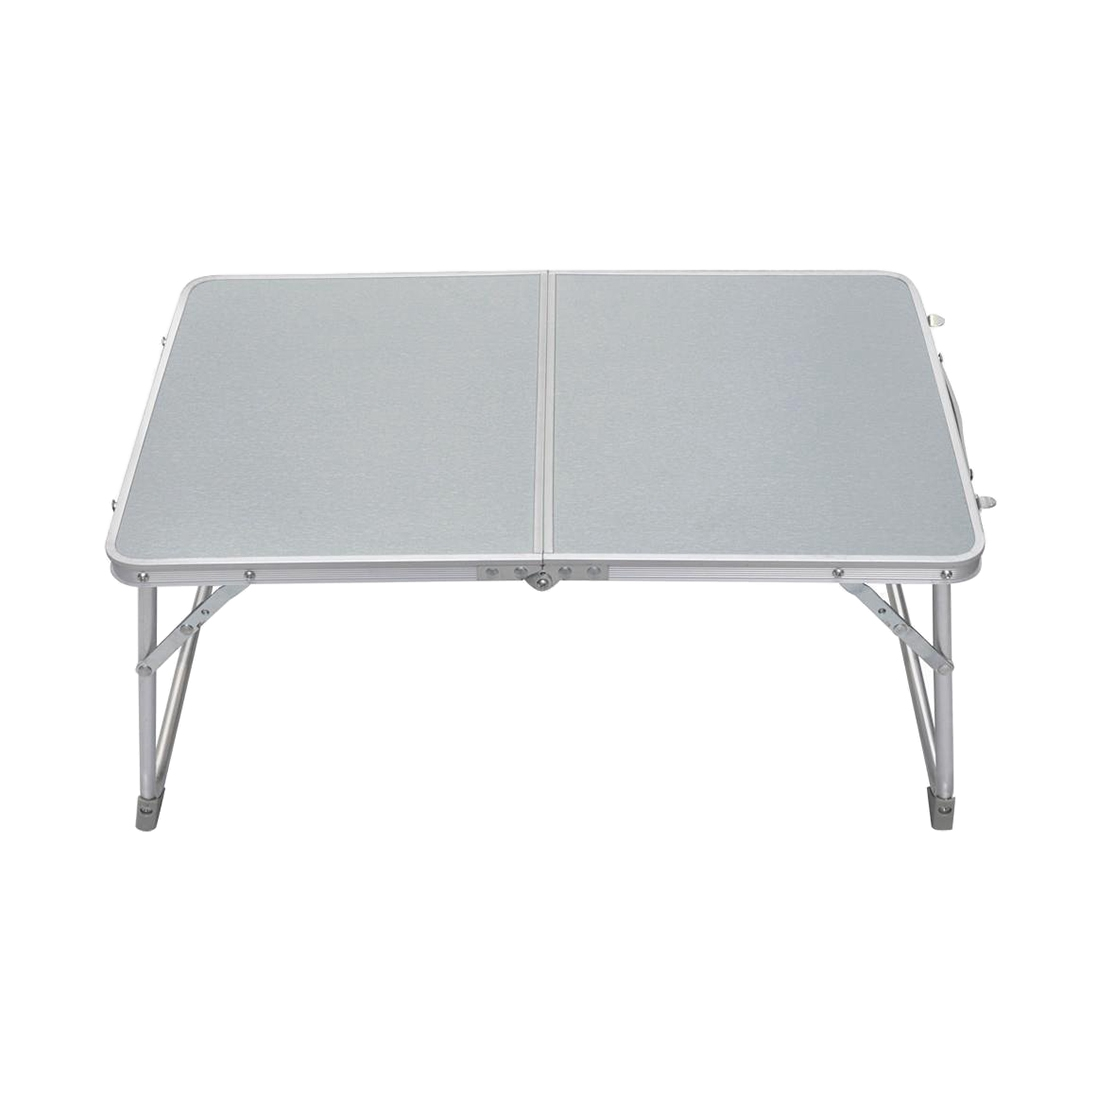 Best Small 62x41x28cm/24.4x16.1x11 PC Laptop Table Bed Desk Camping Picnic BBQ (Silver White)Best Small 62x41x28cm/24.4x16.1x11 PC Laptop Table Bed Desk Camping Picnic BBQ (Silver White)